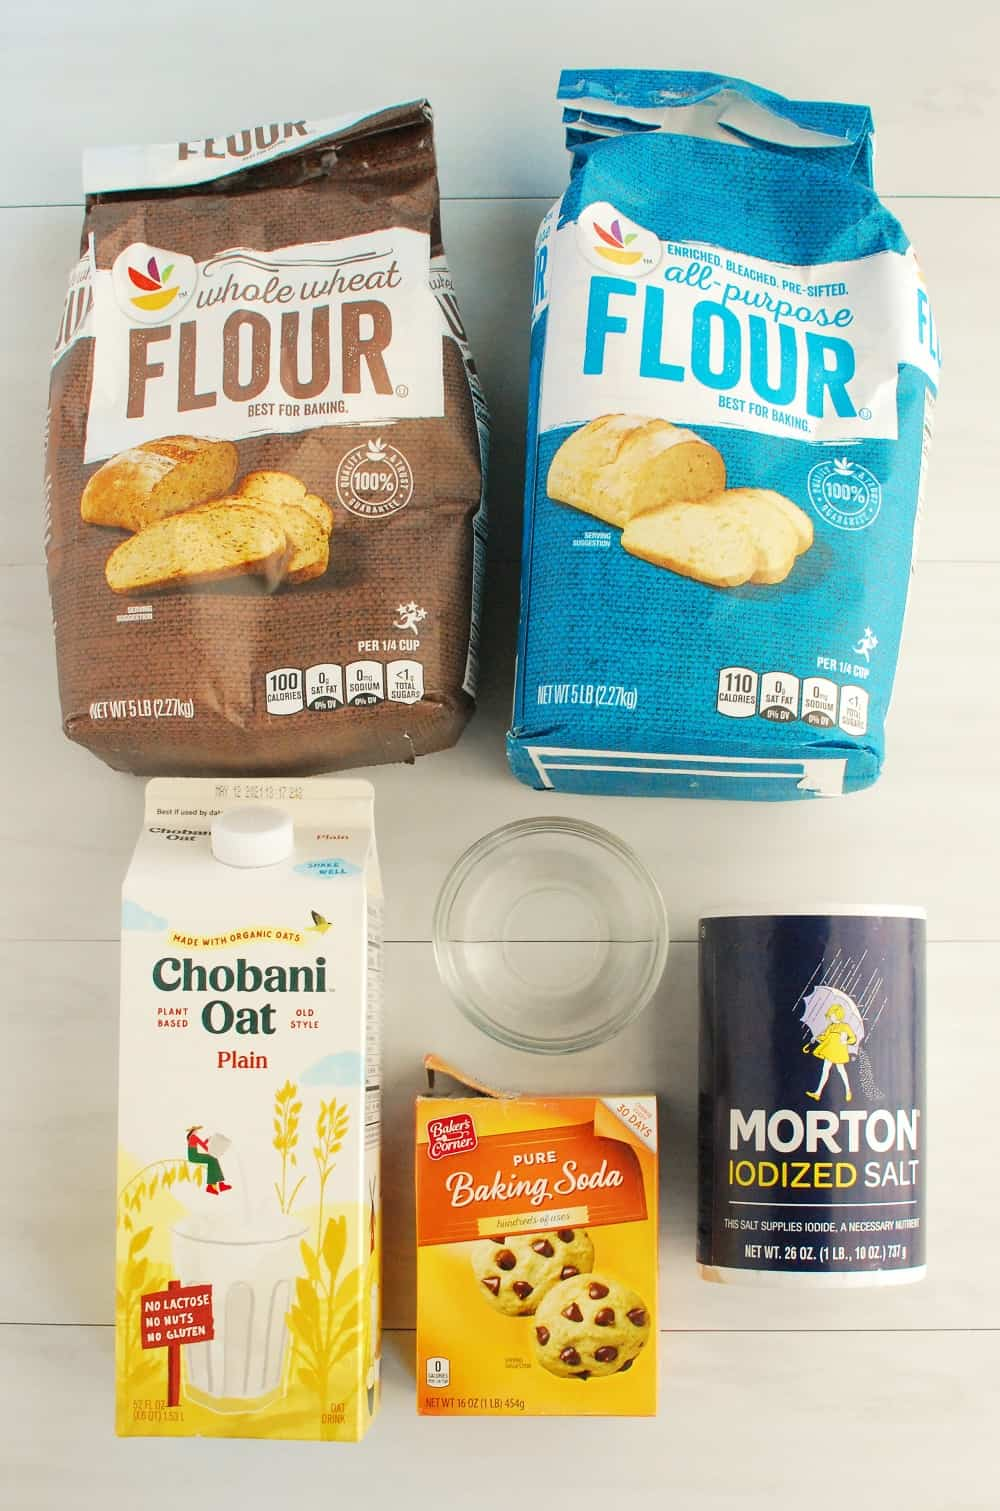 A package of whole wheat flour, a package of white flour, a carton of oat milk, a box of baking soda, a canister of salt, and a small bowl with vinegar.